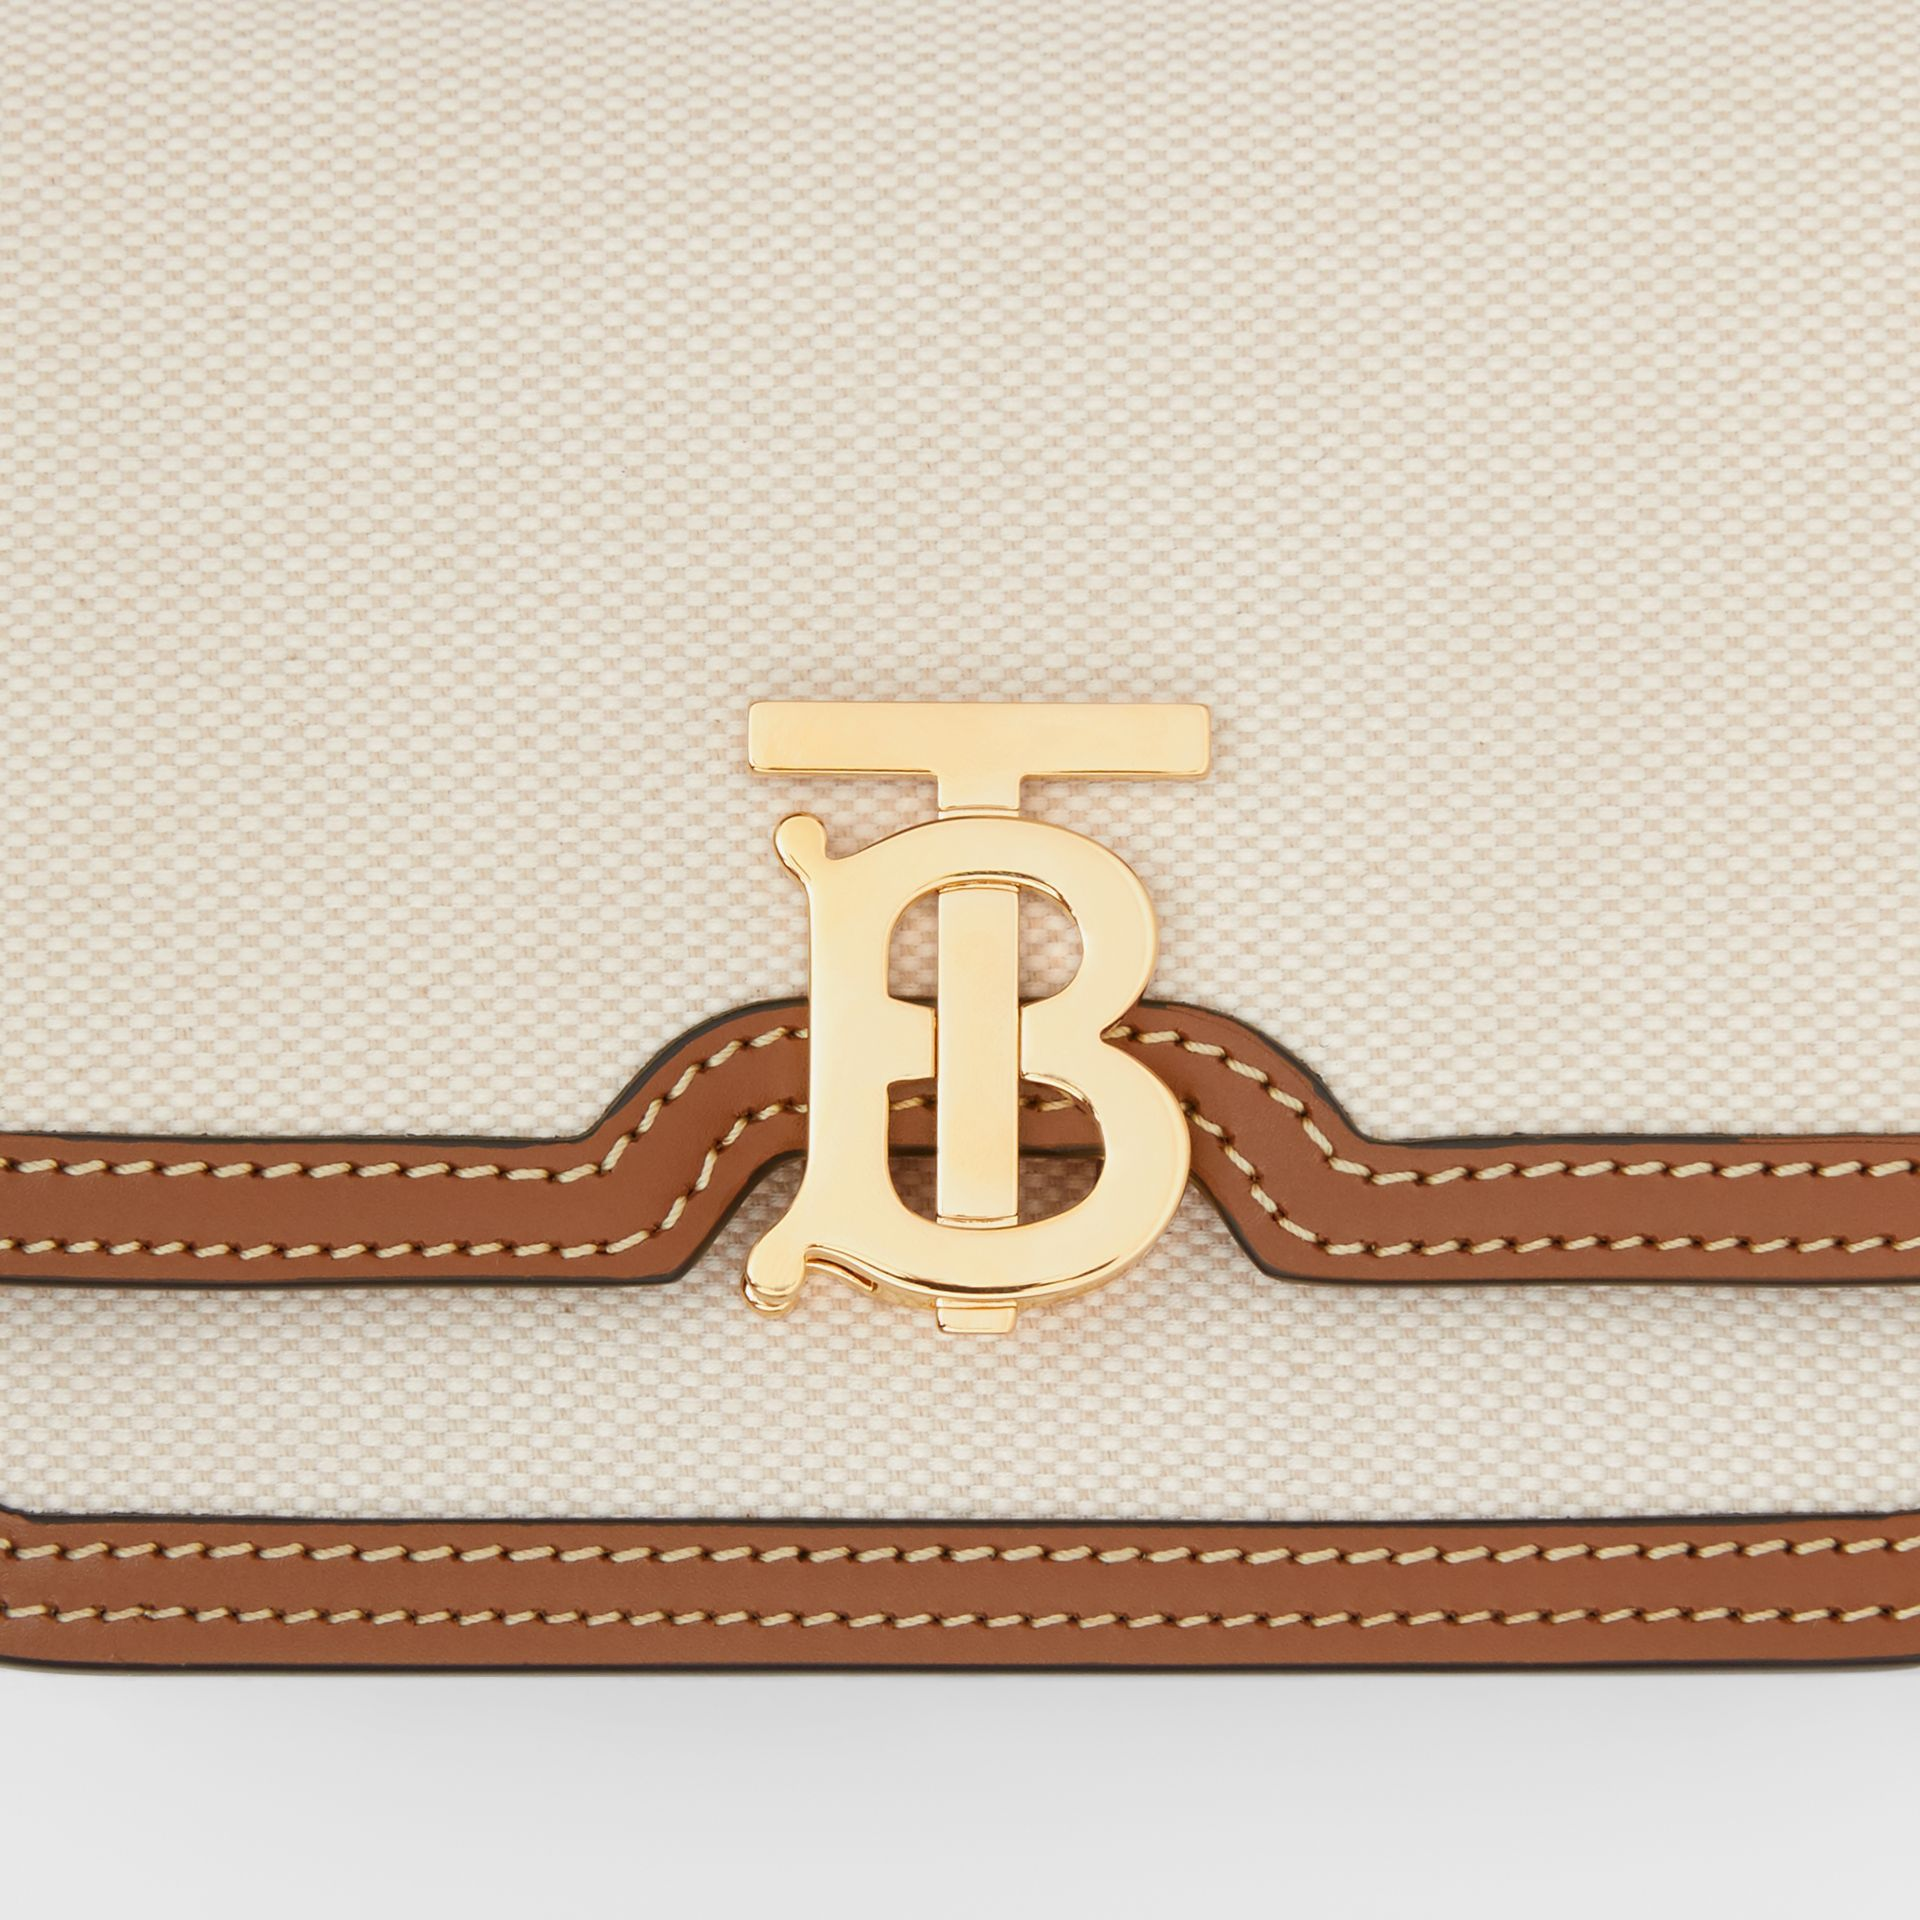 Mini Two-tone Canvas and Leather TB Bag in Natural/malt Brown - Women | Burberry - gallery image 1